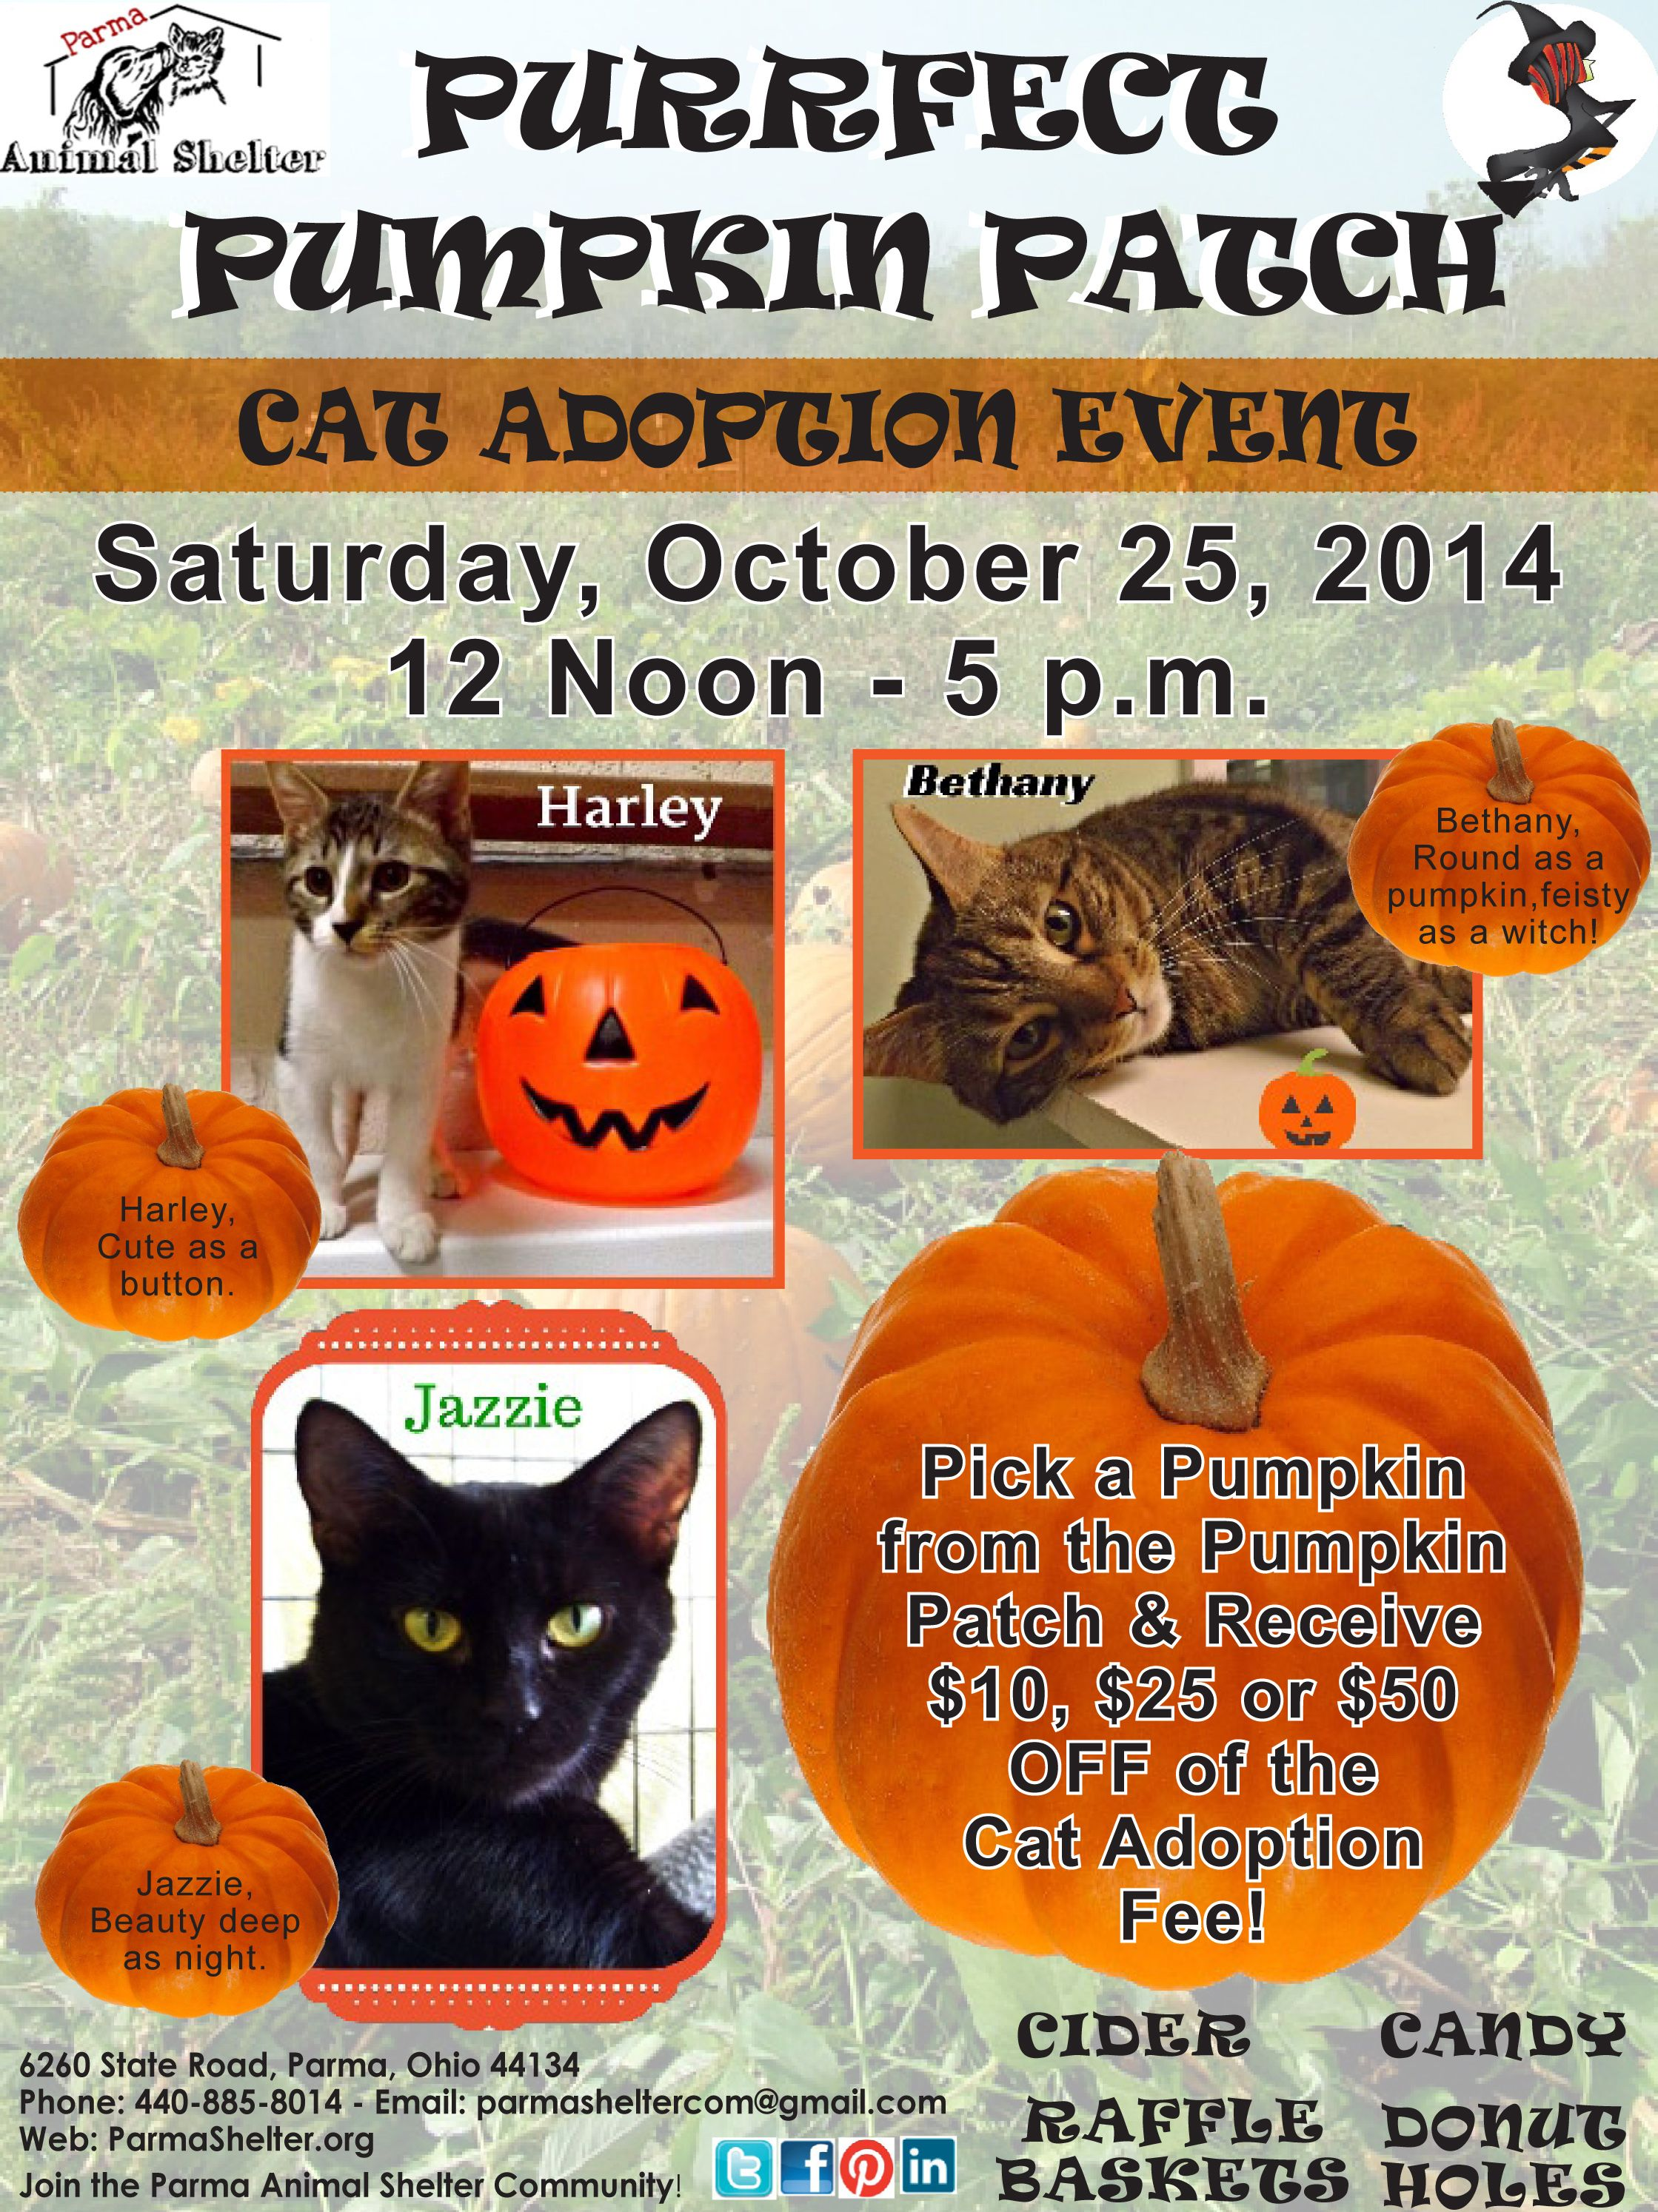 Purrfect Pumpkin Patch Cat Adoption Event At The Parma Animal Shelter On Saturday October 25 2014 Pick Cat